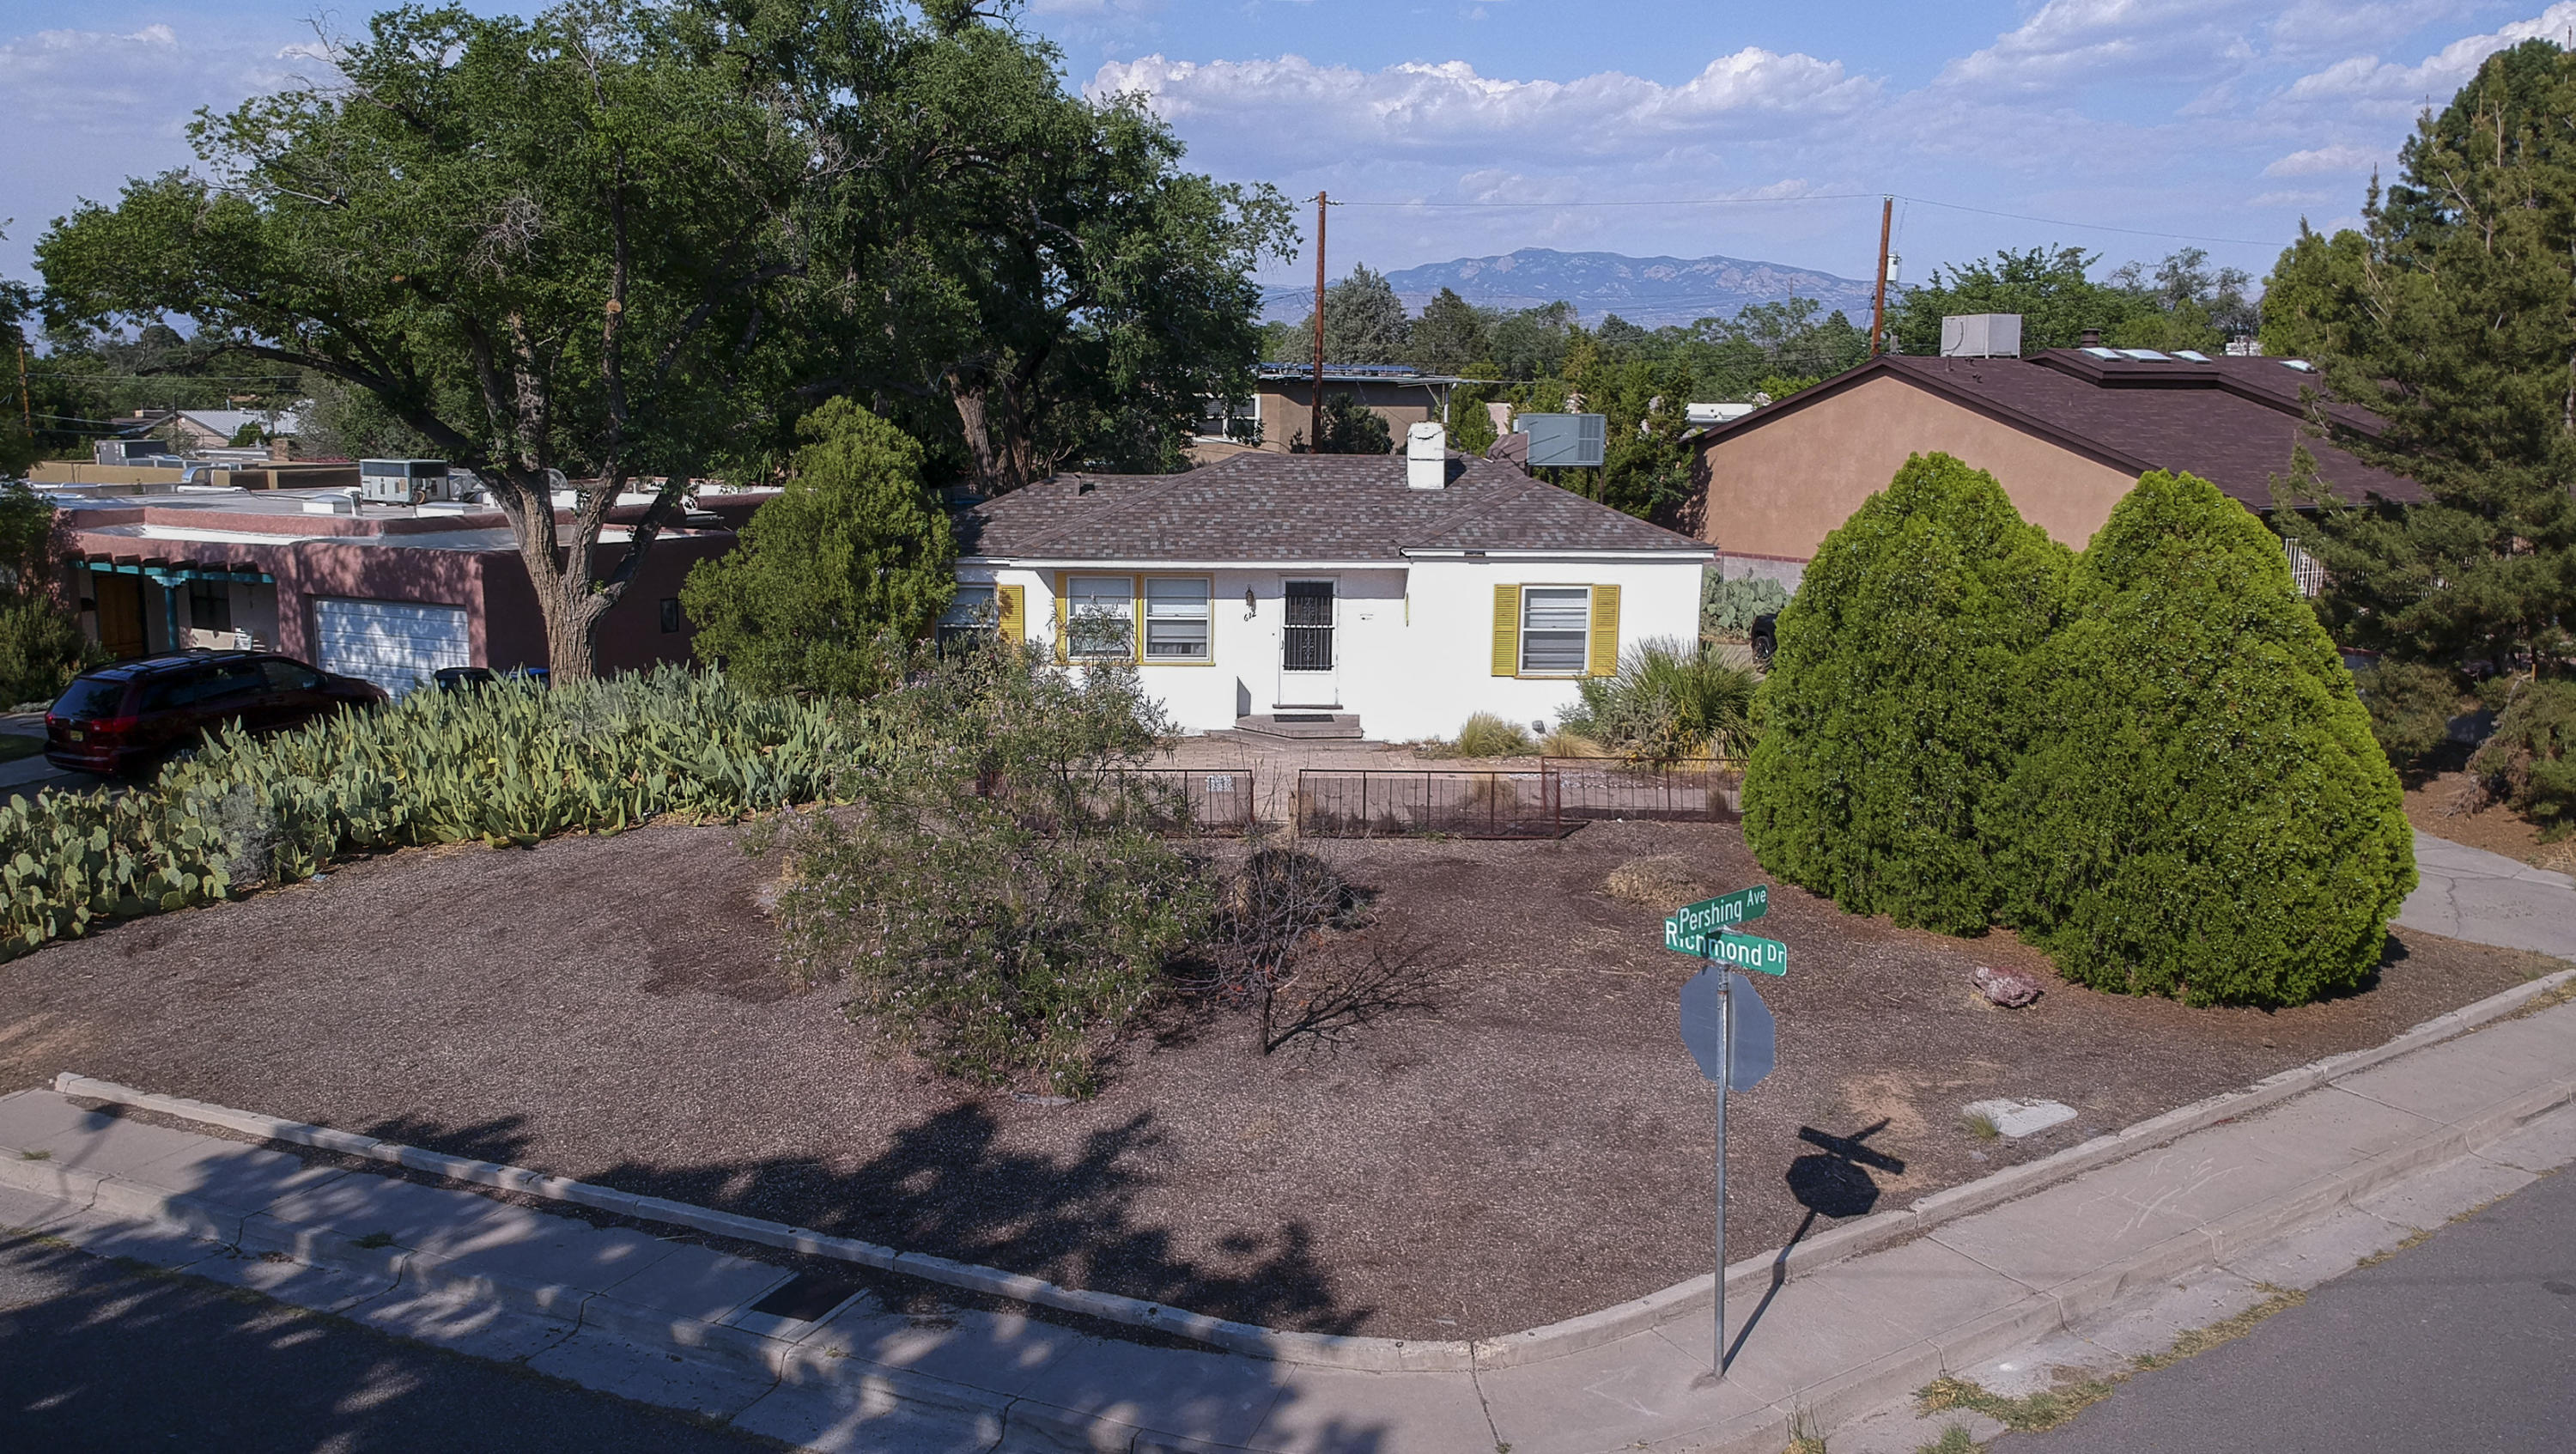 Awesome and unique little property right on Hyder park. Refrigerated Air, New Roof in 2019, big corner lot, Room to park an RV or camper. Super close to Nob Hill, UNM, Hospitals, Downtown, Airport, Interstate access, KAFB, VA.  Butcher block counter tops, soft close drawers, updated kitchen appliances. Do Not Disturb Tenant First showings will be 06-27-2021